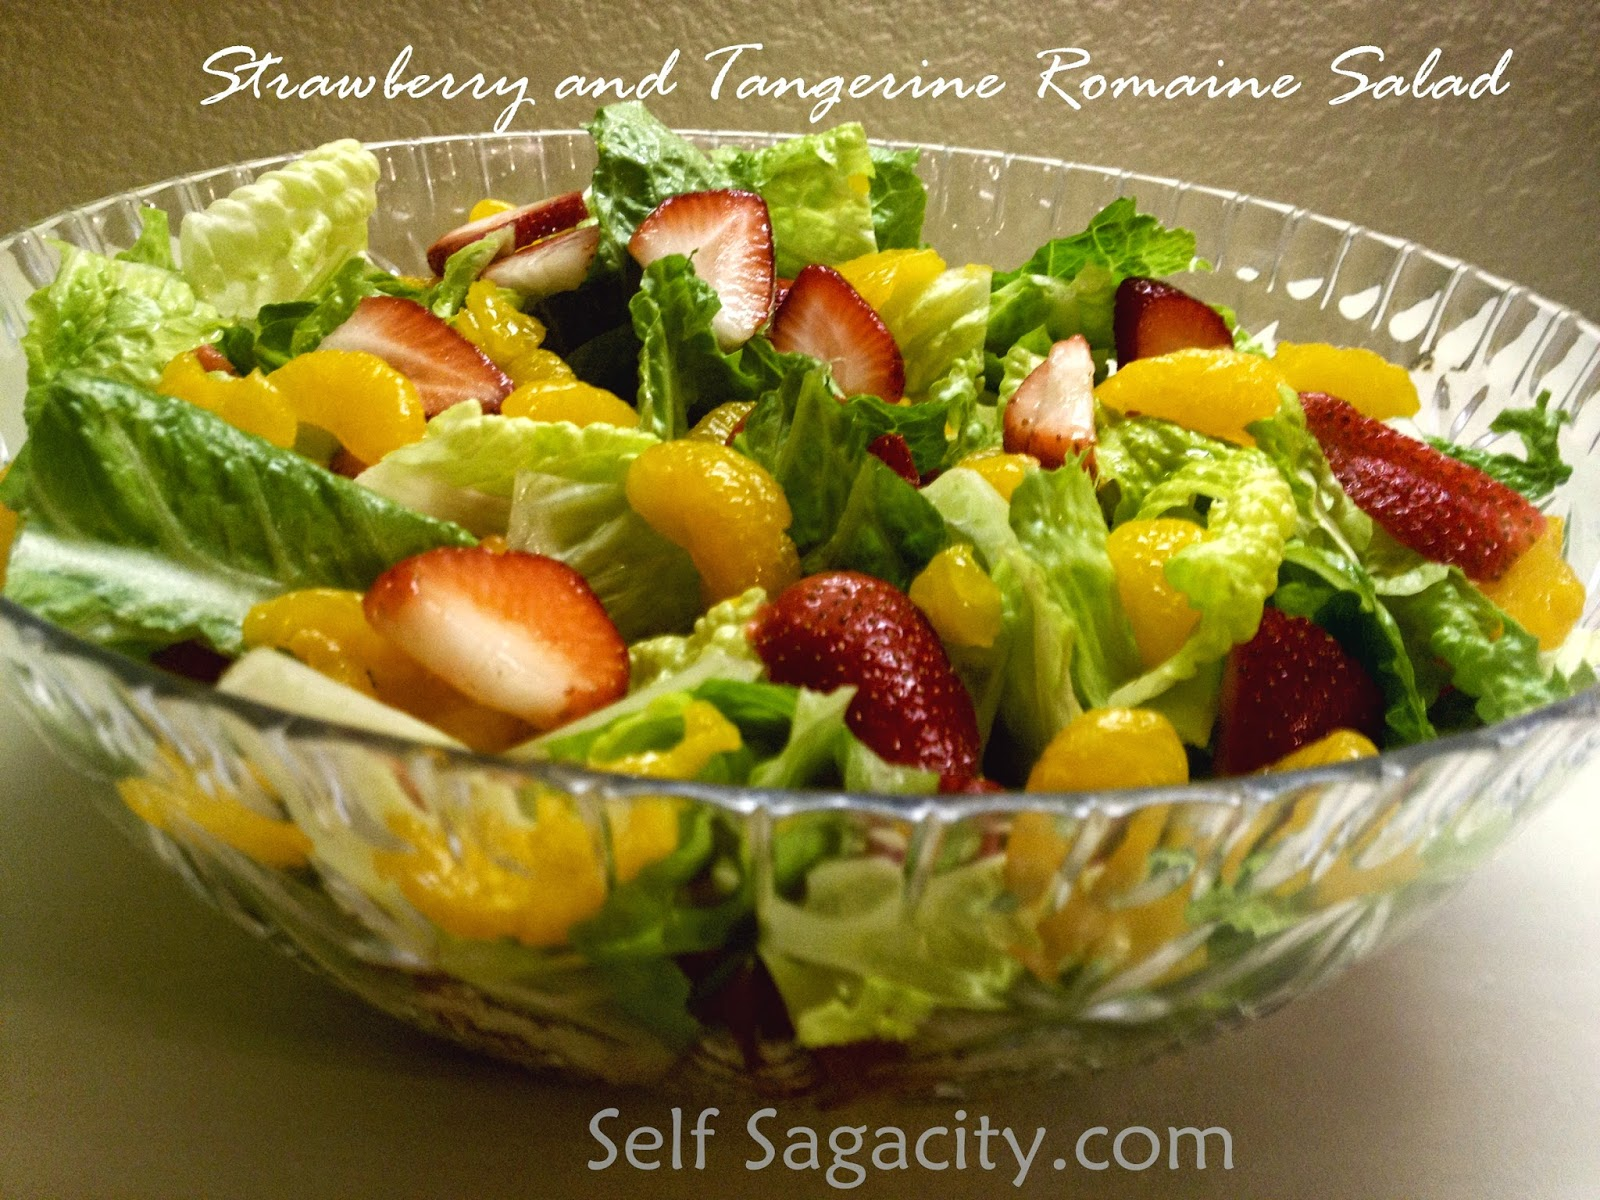 Strawberry and Tangerine Romaine Salad